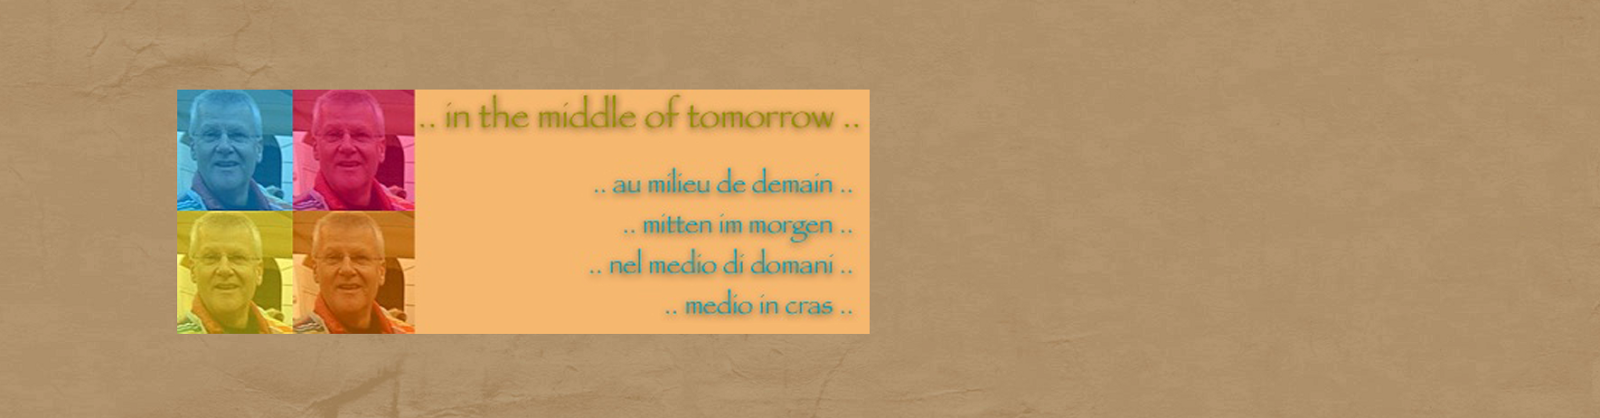 .. in the middle of tomorrow ..